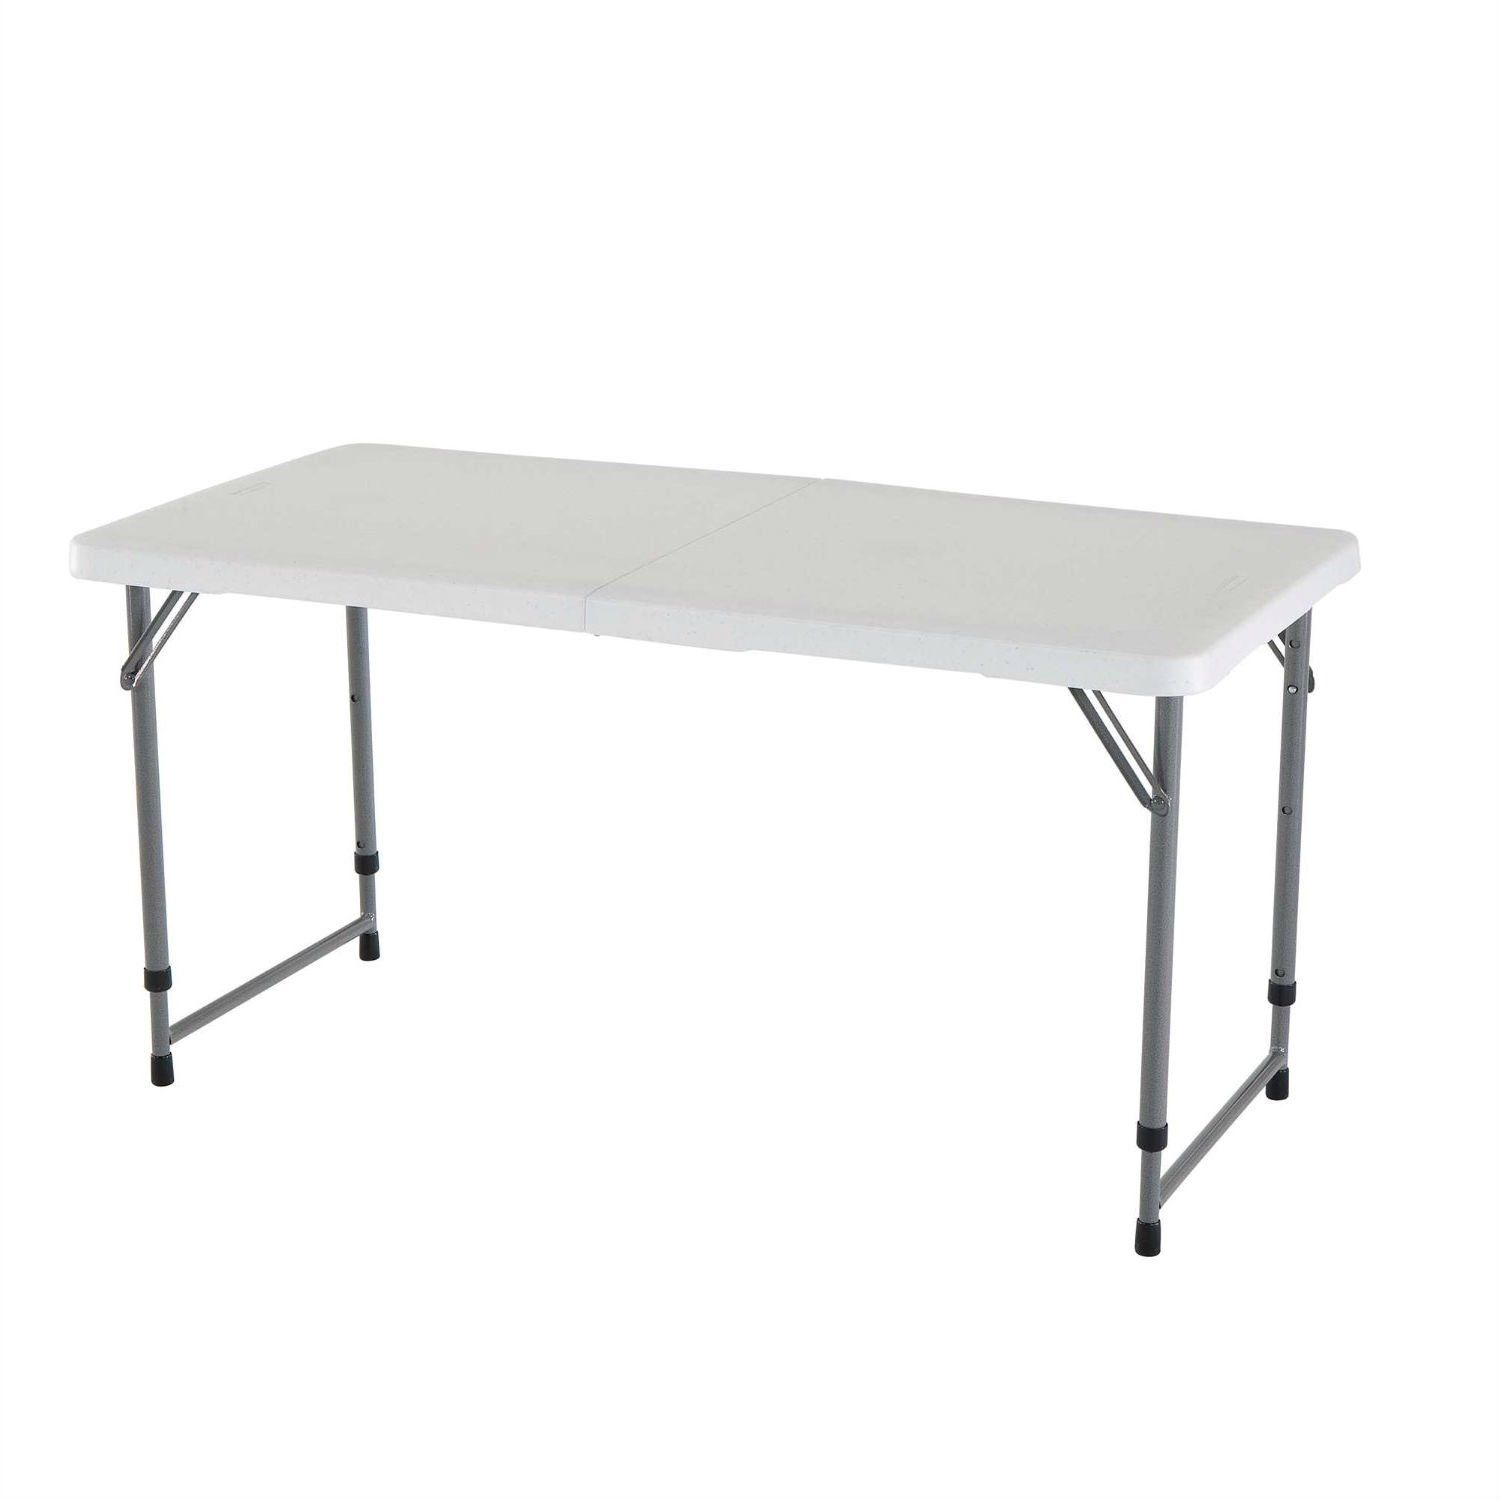 - Lifetime 4-Foot Light Commercial Fold-In-Half Adjustable Table